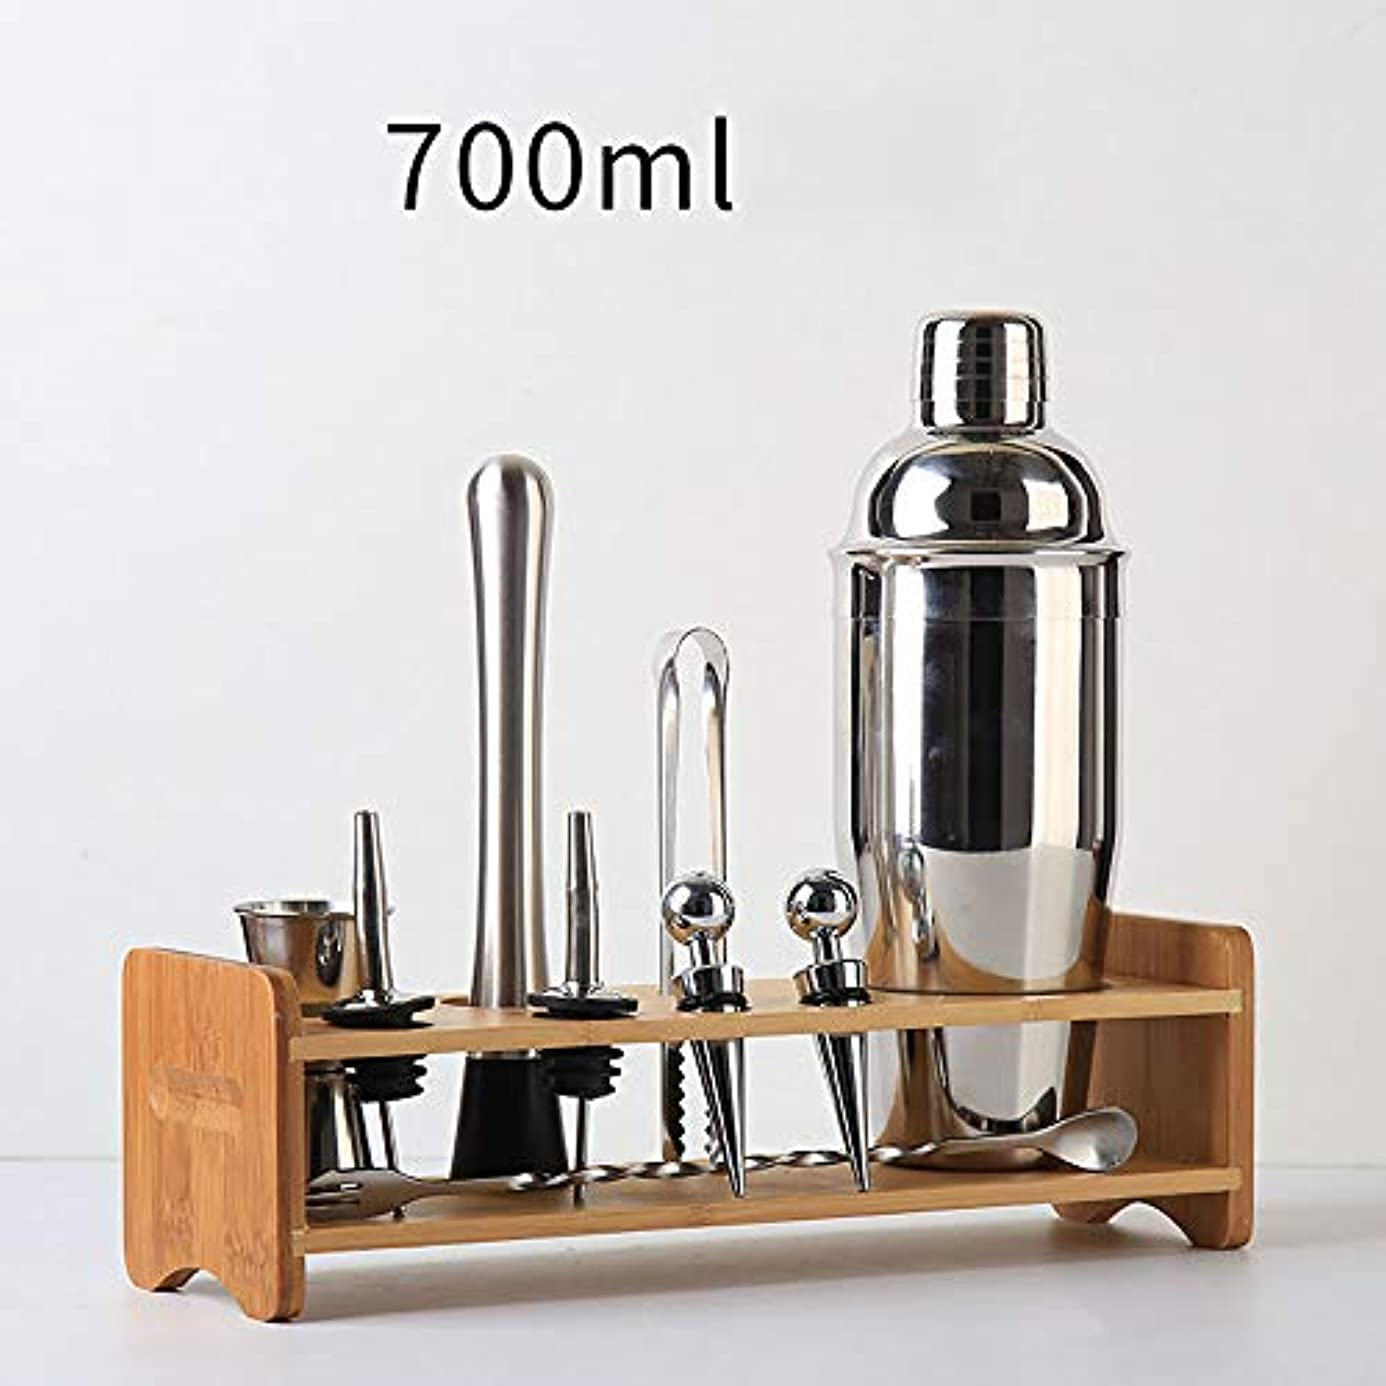 とんでもない掃く電気のShike Cup Cocktail Shaker、ステンレススチールハンドシェイクシェーカー、Tea Shop Xueke Pot Bar Tool Set、Beverage Mix Professional Bartender...